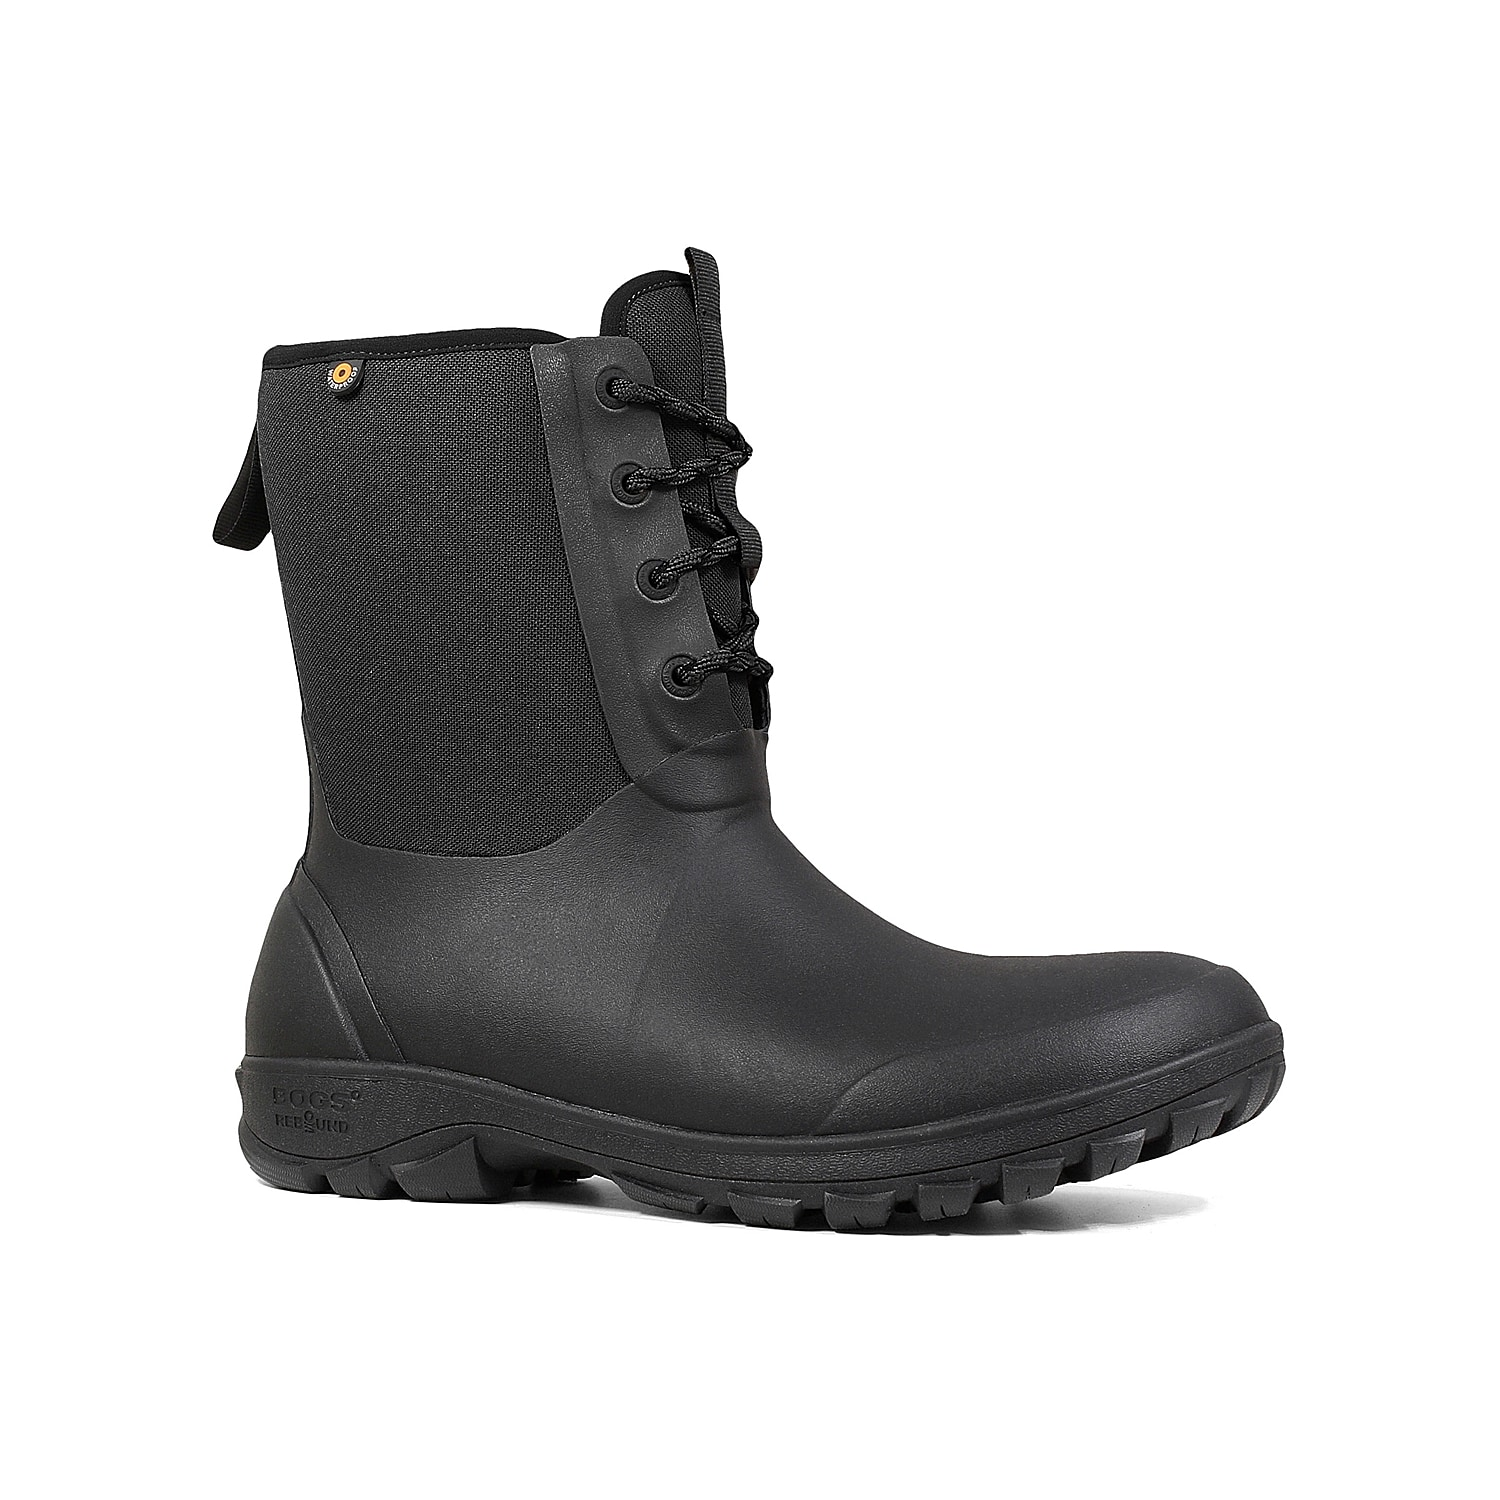 Bogs brings you the Sauvie snow boot that provides all-day comfort and stability. This lace-up features a fully waterproof construction and Max-Wick technology that evaporates sweat to keep feet dry!